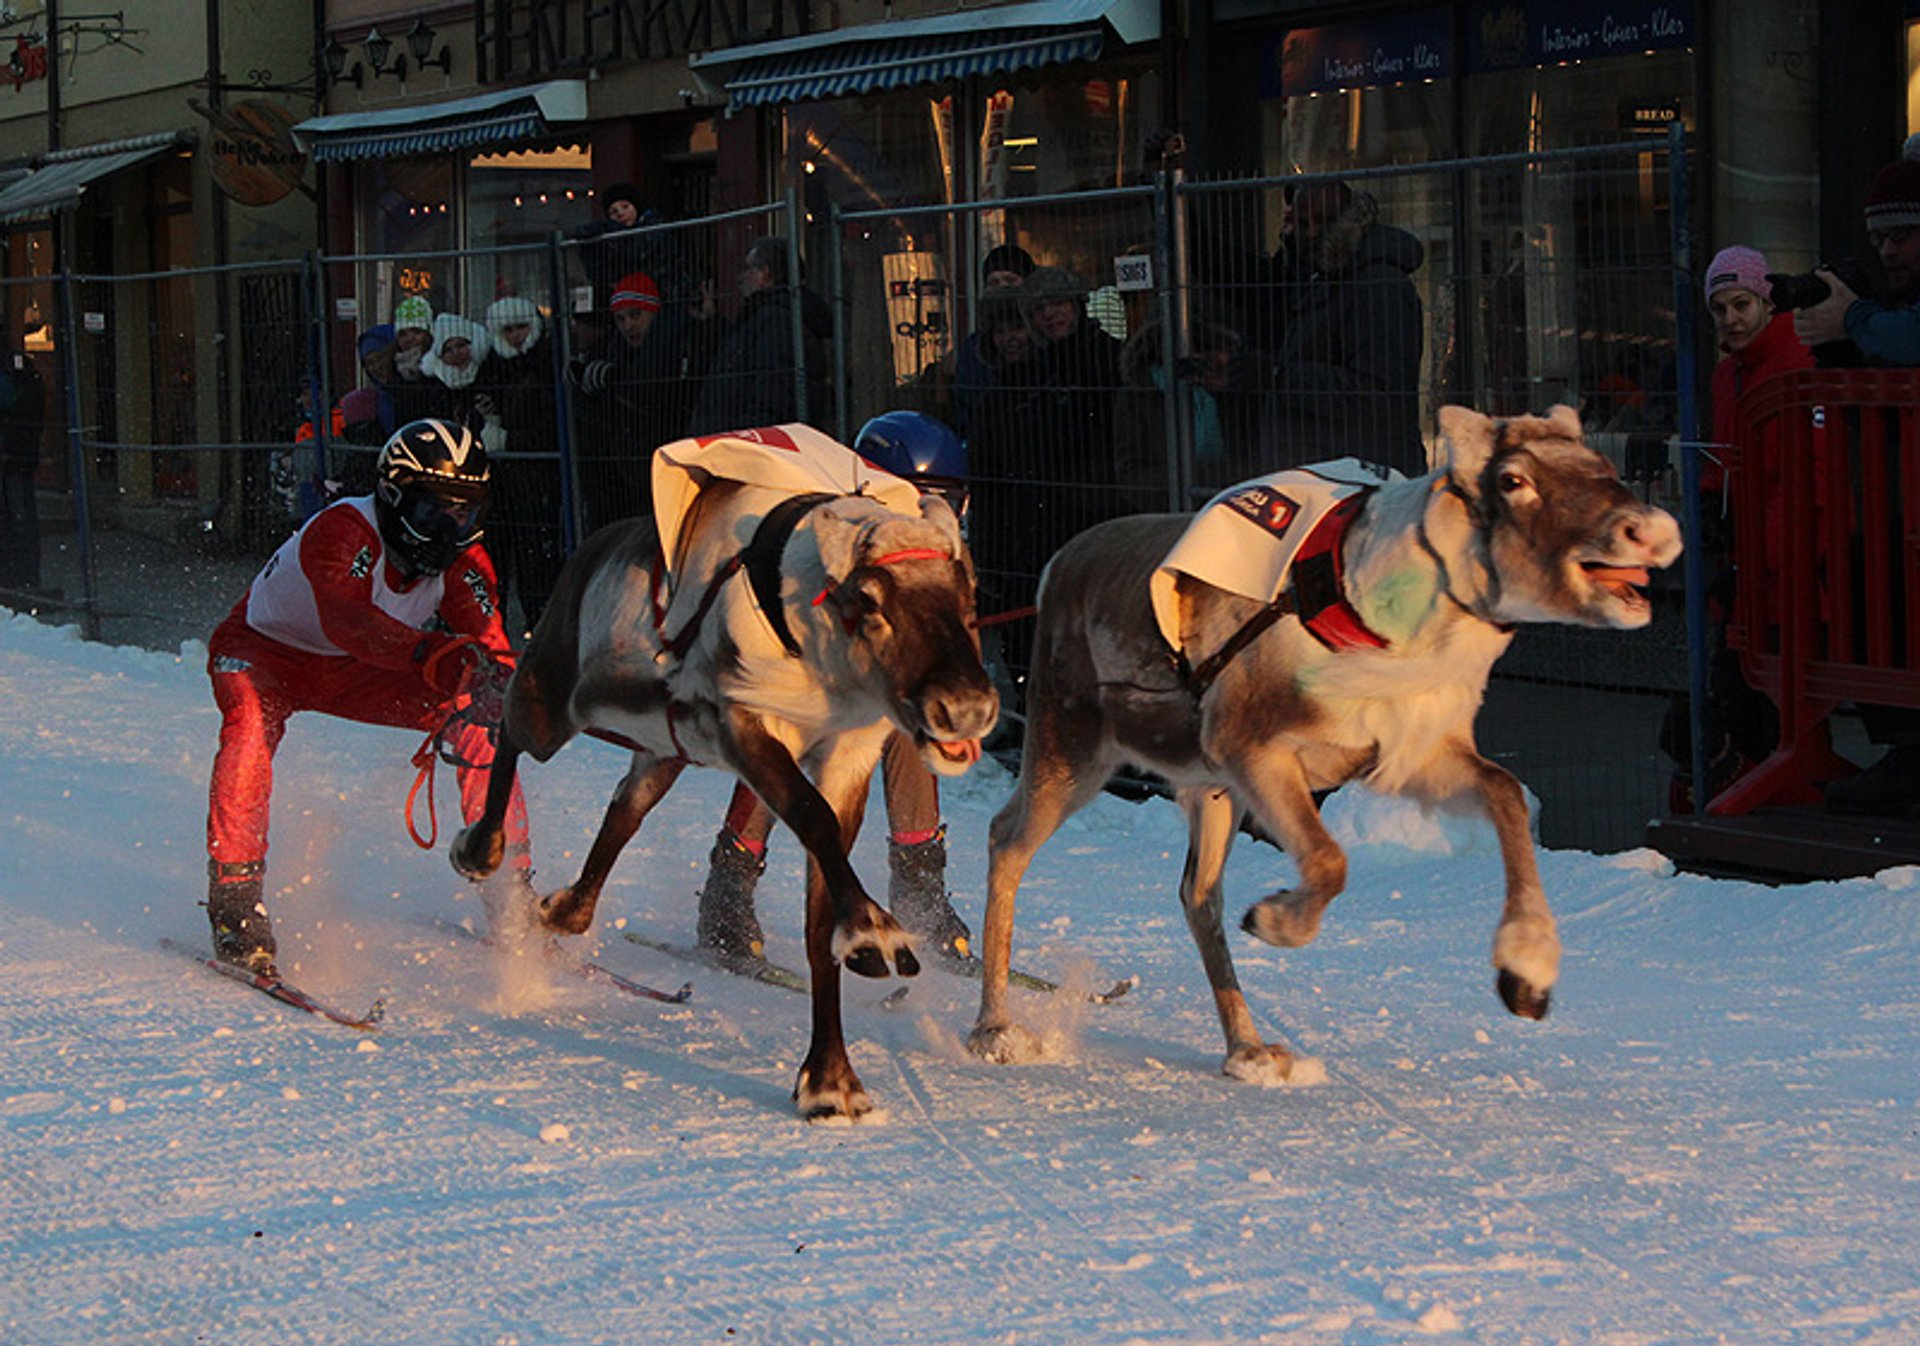 The reindeer can run up to 60 km/h. Reindeer racing in Tromsø is the right place to check whether it's true. 2019